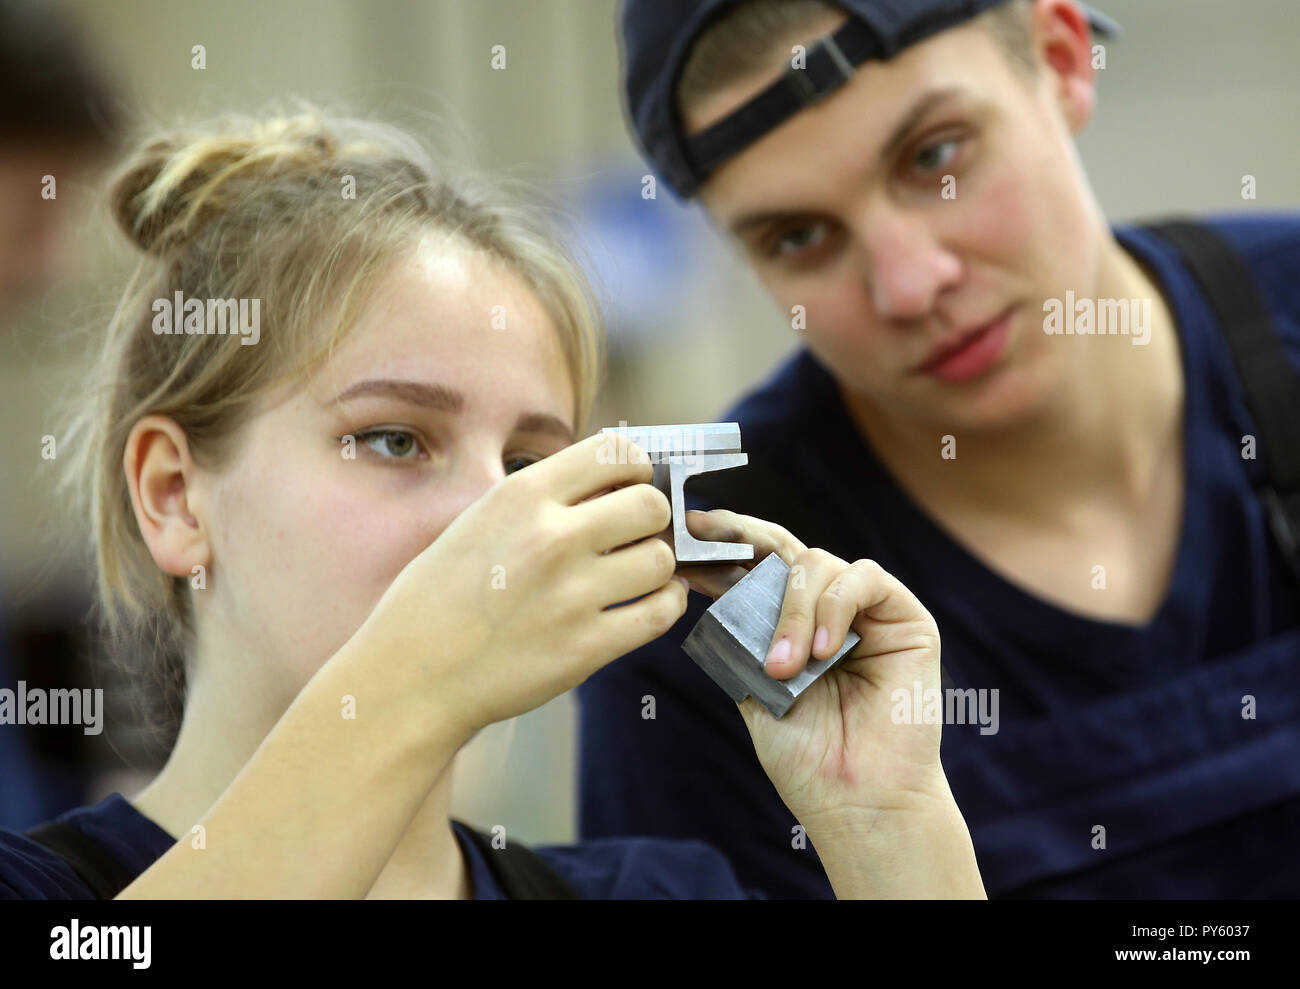 Berlin, Germany. 26th Oct, 2018. At the beginning of a press conference on the campaign 'Training: A Question of Adjustment' at the Berliner Wasserwerke training facility, trainees check the dimensional accuracy of a workpiece. The campaign aims to recruit more trainees with a migration history. Credit: Wolfgang Kumm/dpa/Alamy Live News - Stock Image